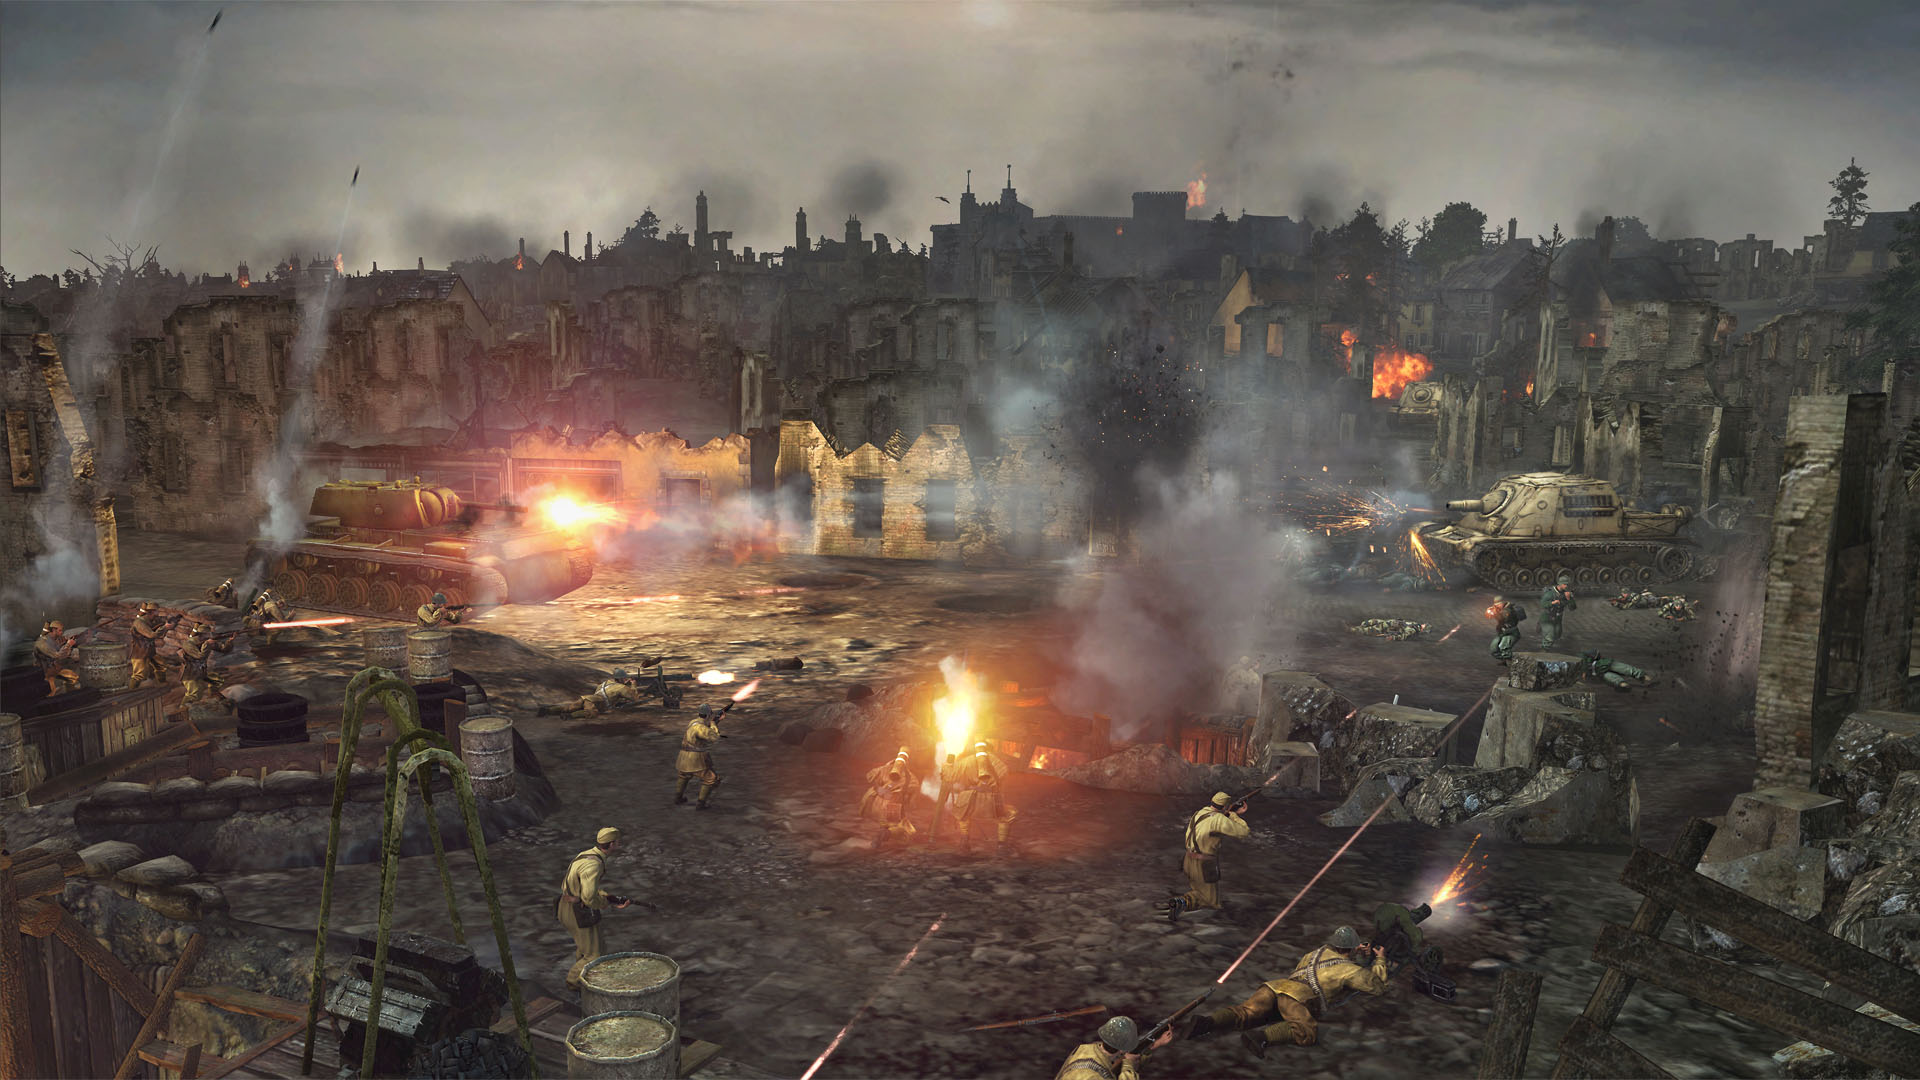 C:\Users\Илона\AppData\Local\Microsoft\Windows\INetCache\Content.Word\Company of Heroes.jpg